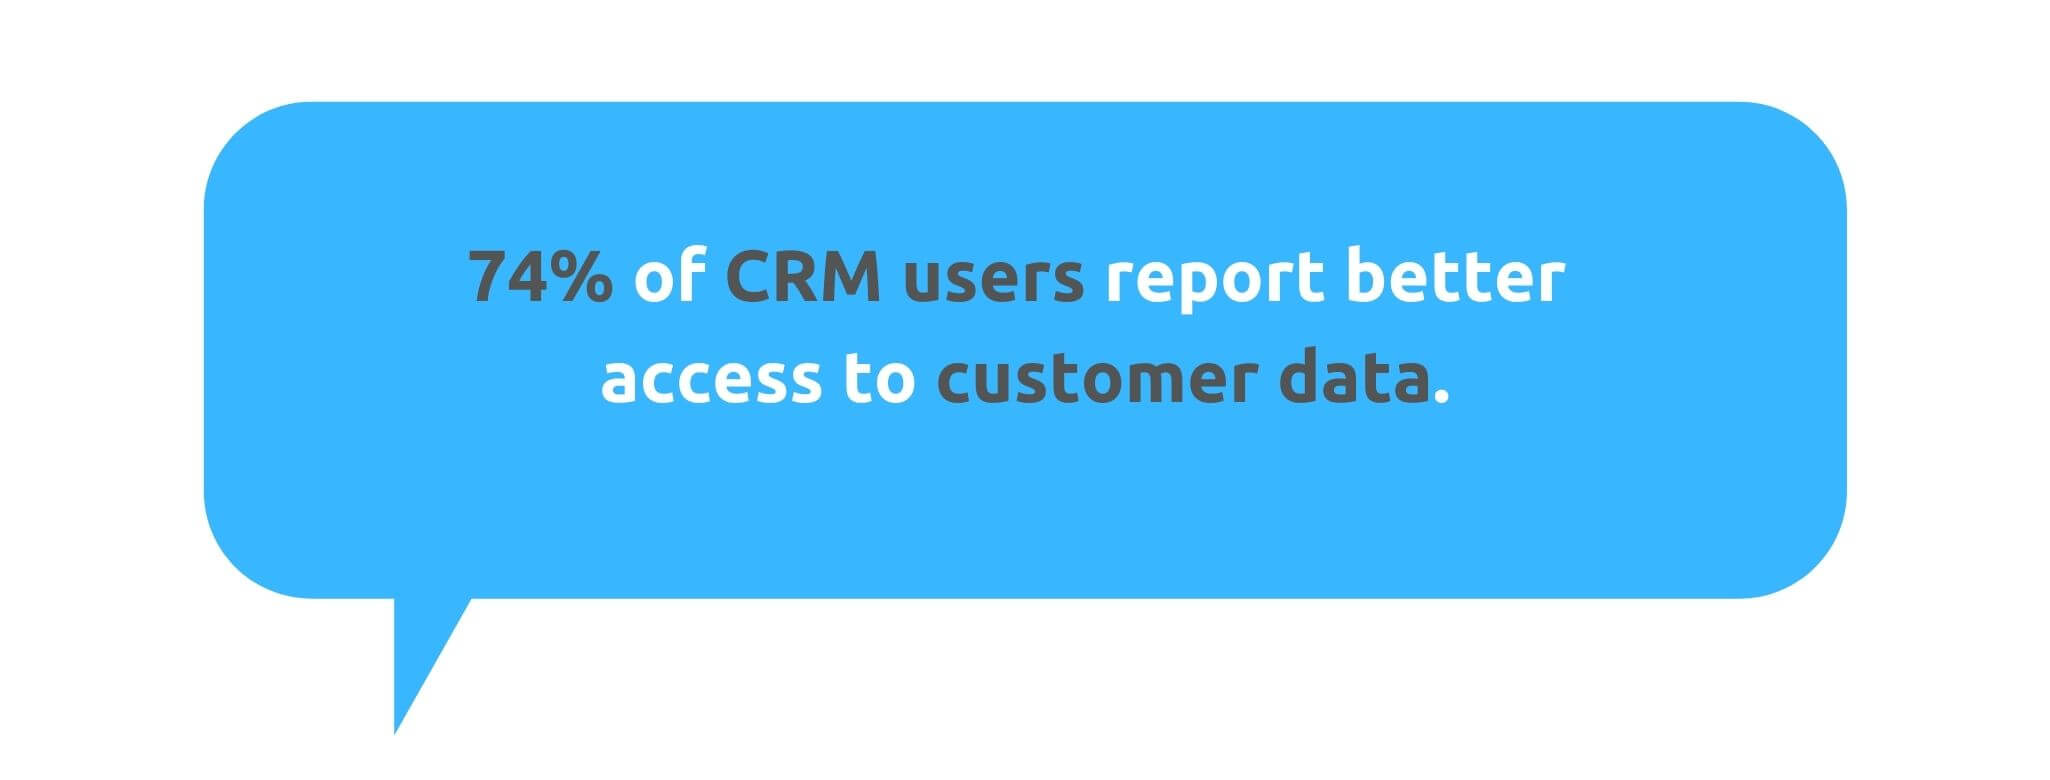 Better Access to Customer Data - 50+ CRM Stats - Replyco Helpdesk Software for eCommerce